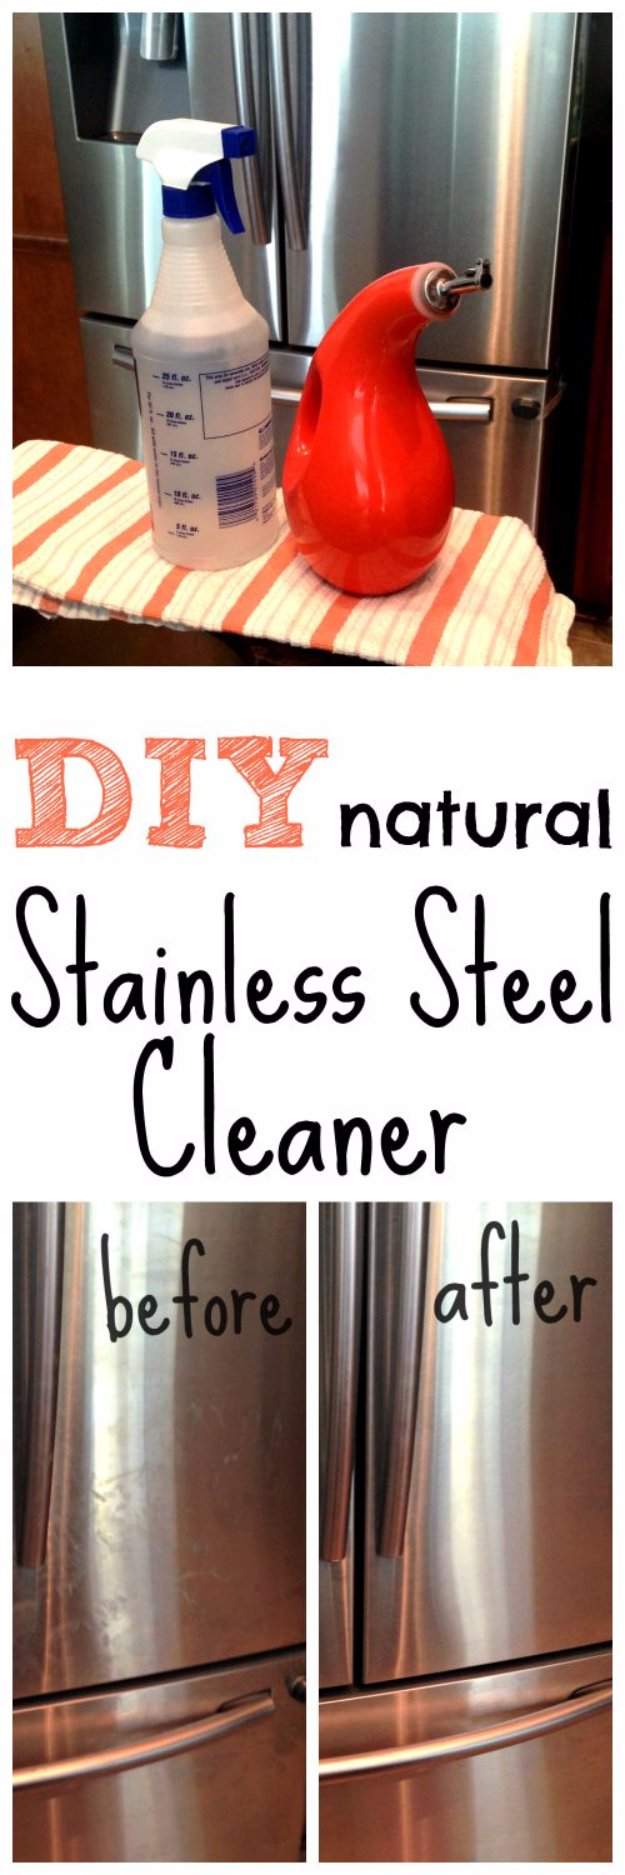 41 DIY Homemade Cleaner Recipes